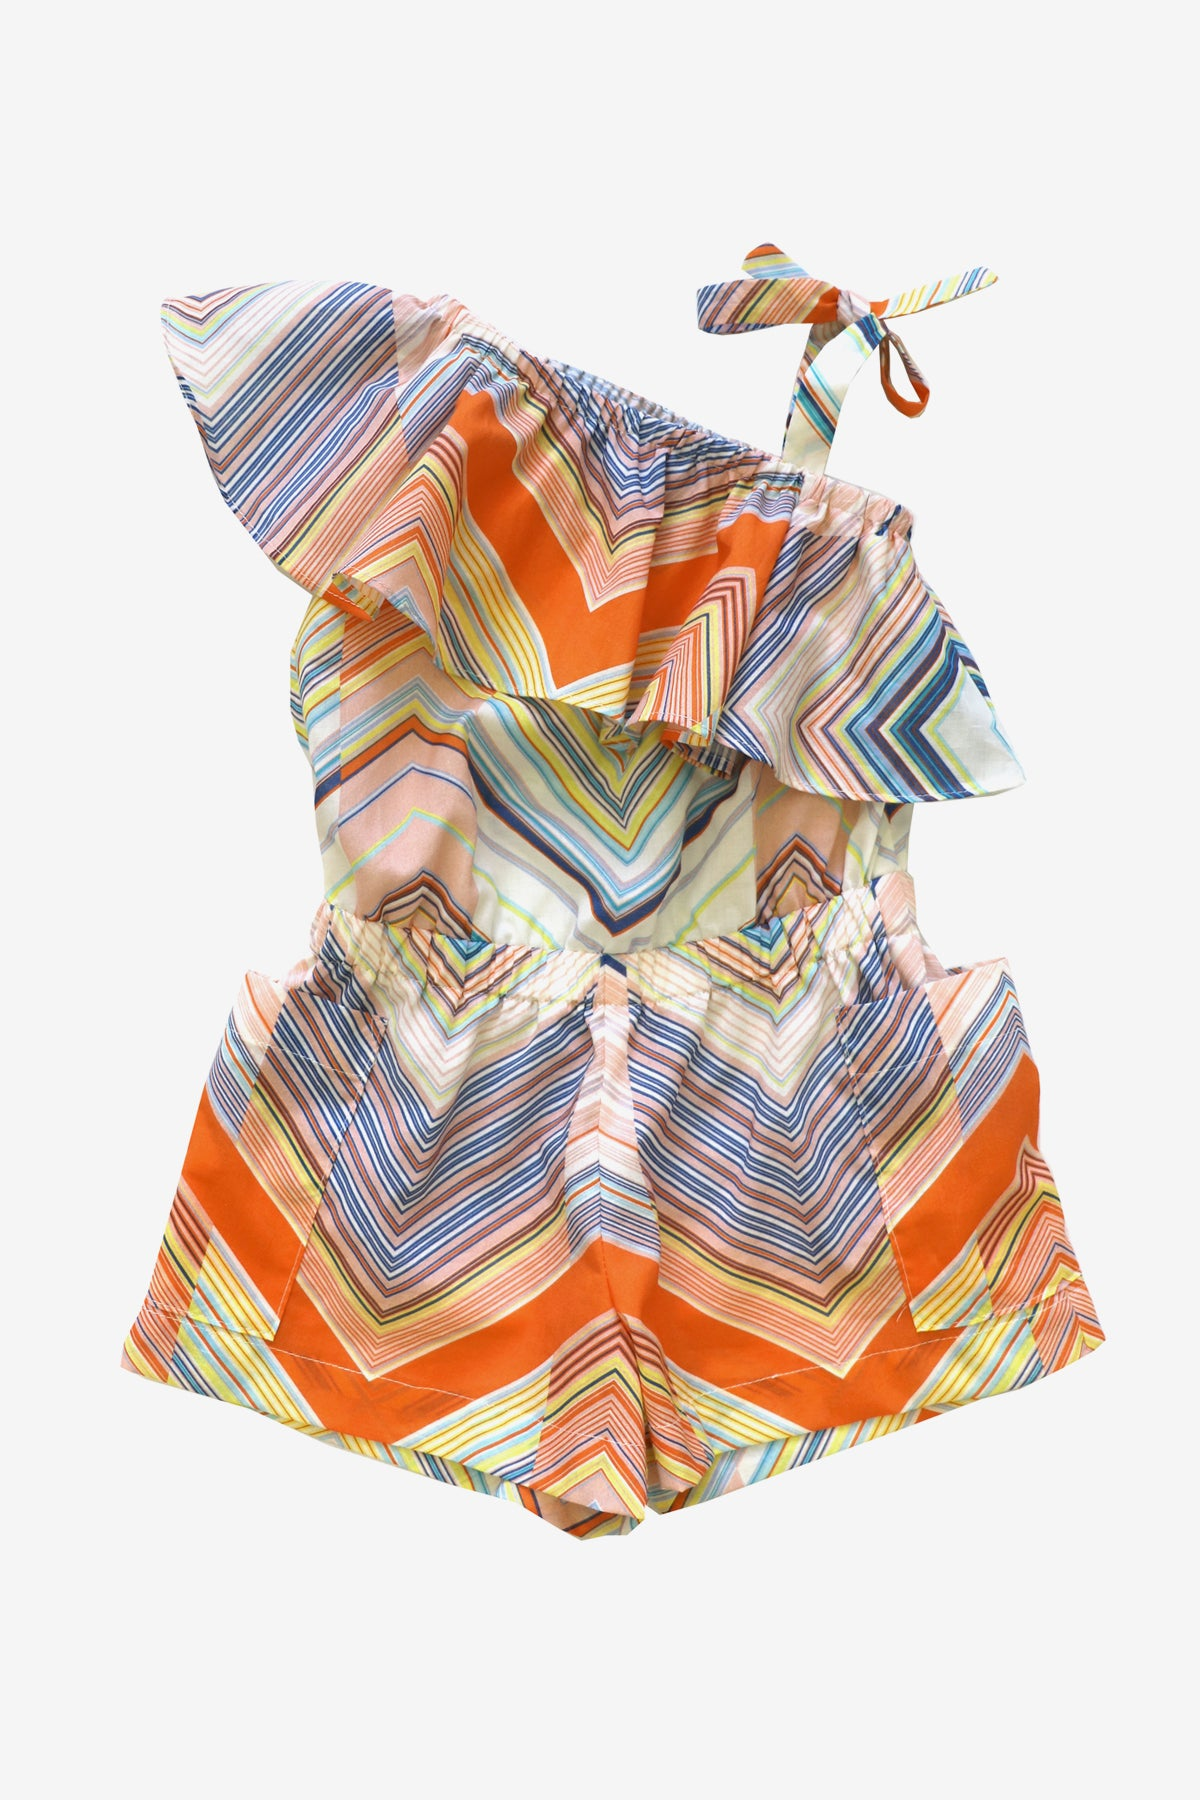 Anthem of the Ants Asymmetric Kaleidoscope Girls Romper (Size 4 left)